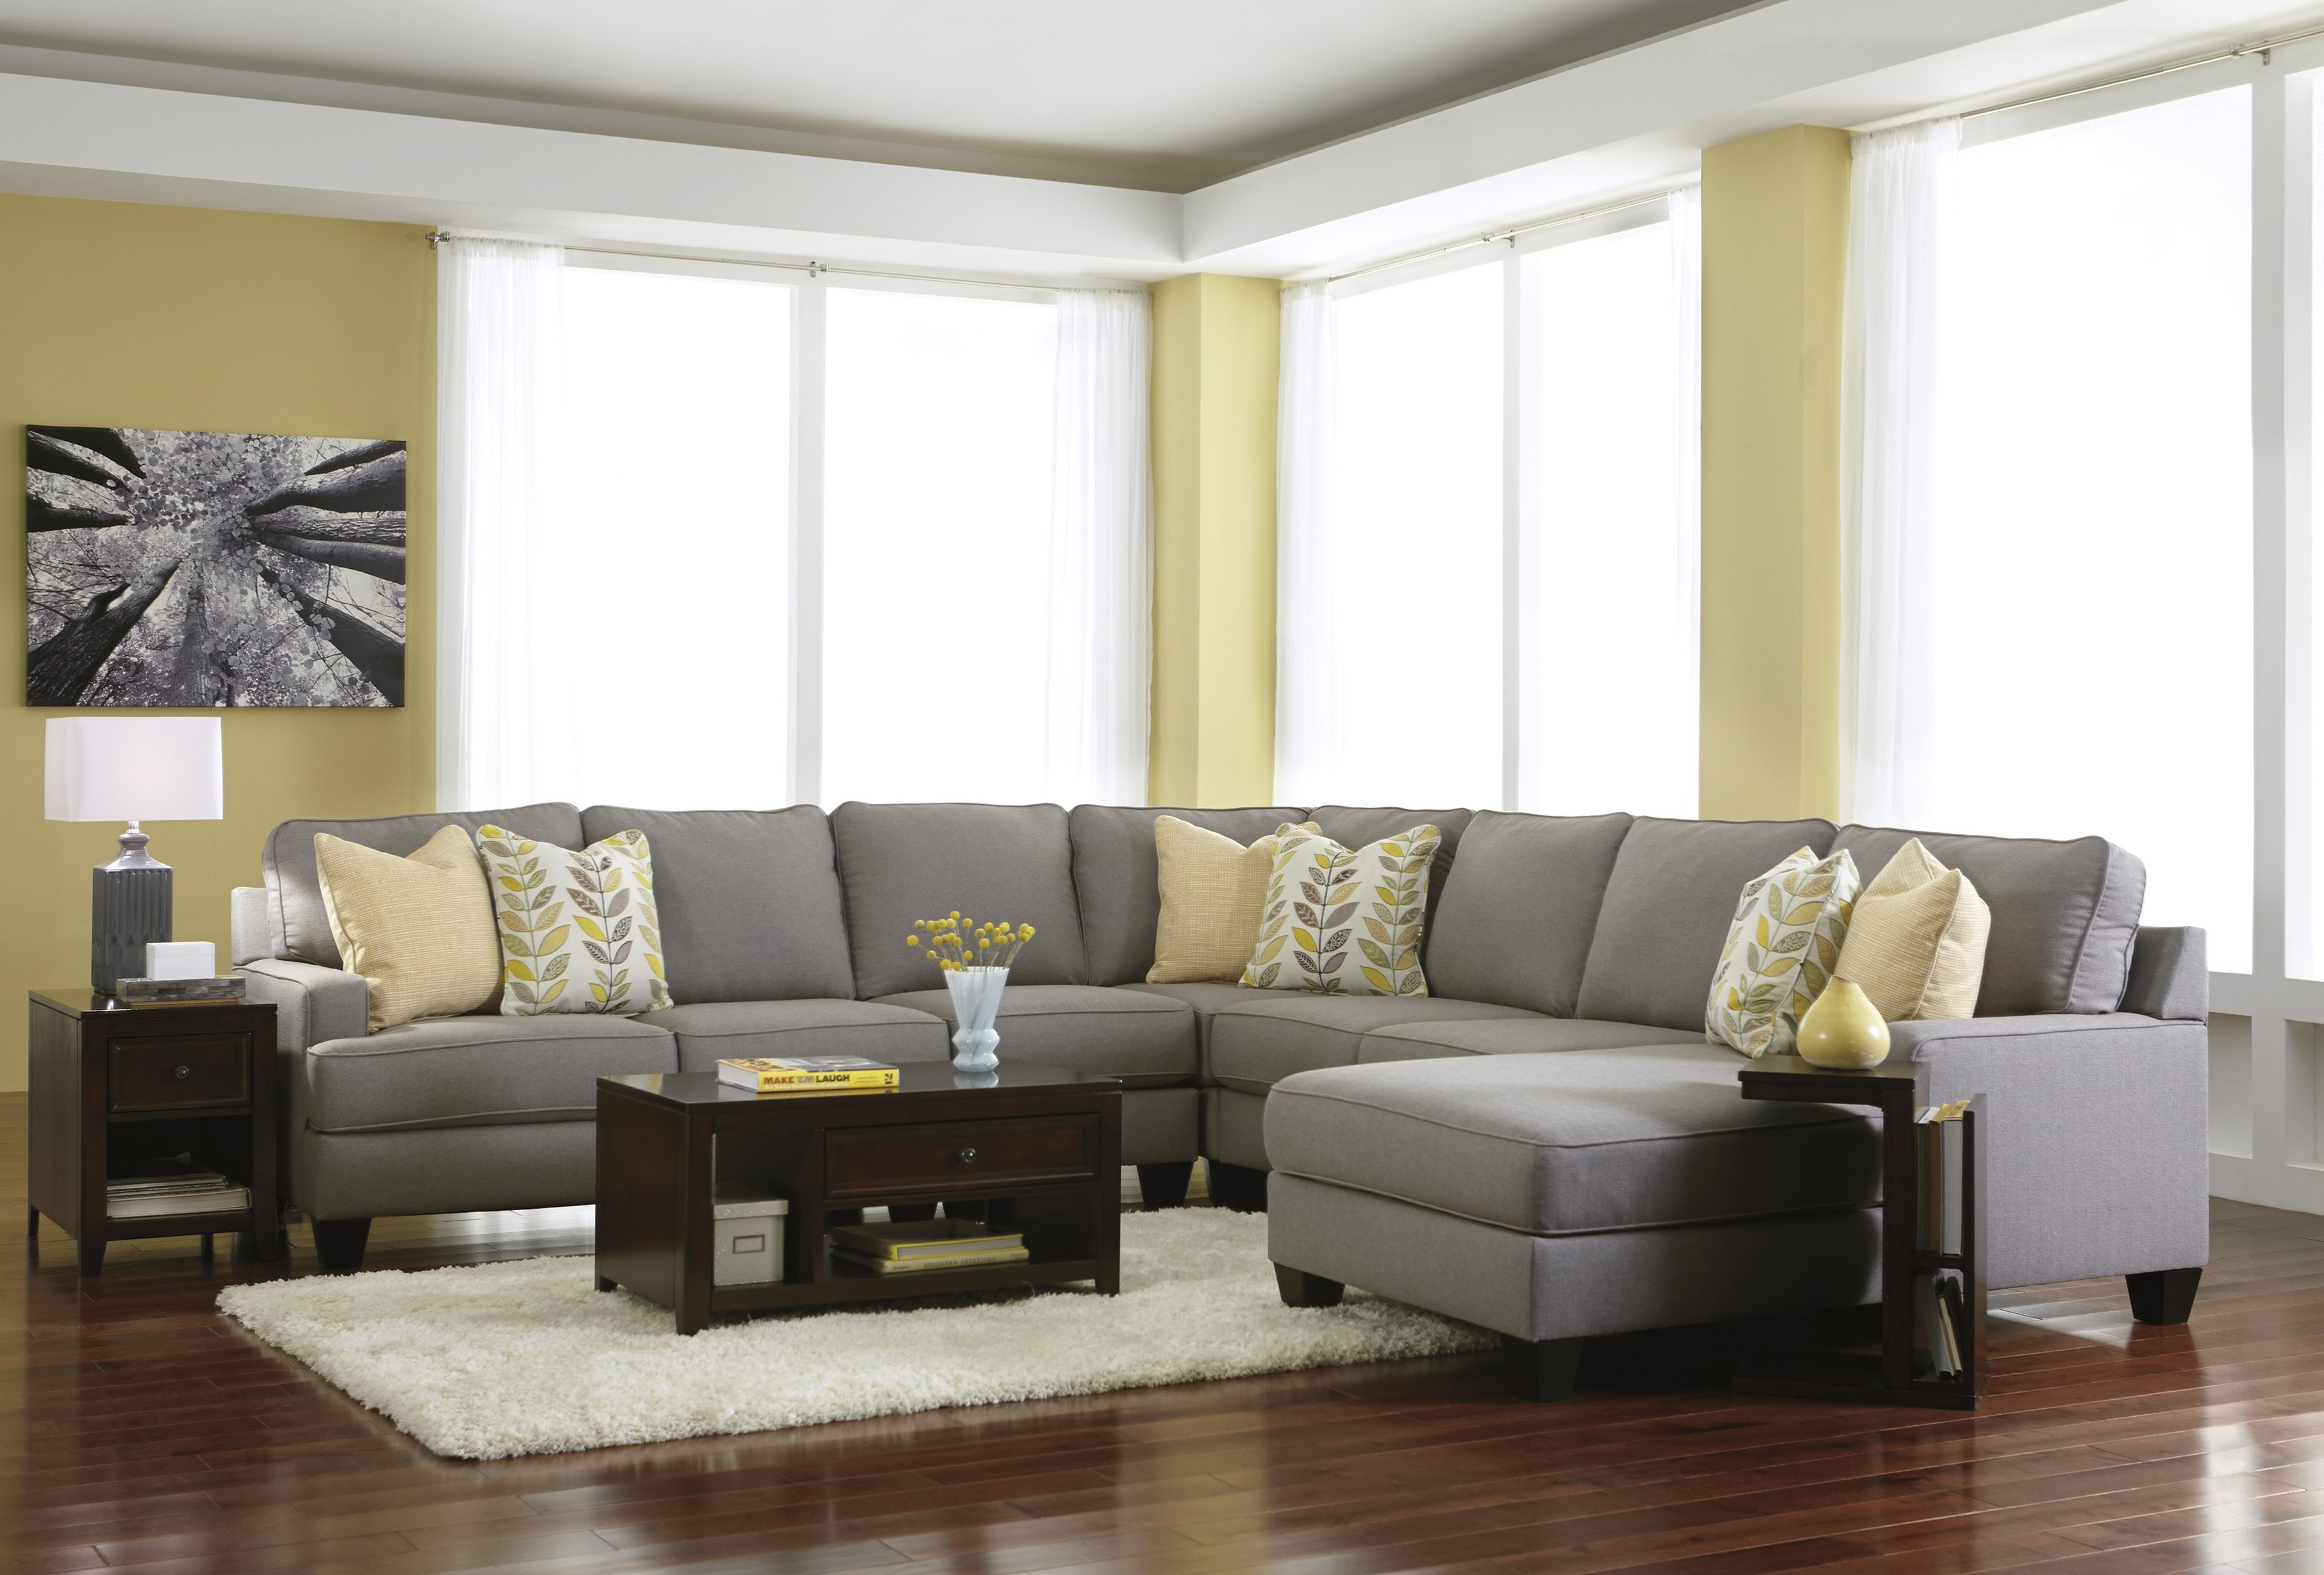 best of sectional sofas for sale ideas-Excellent Sectional sofas for Sale Wallpaper